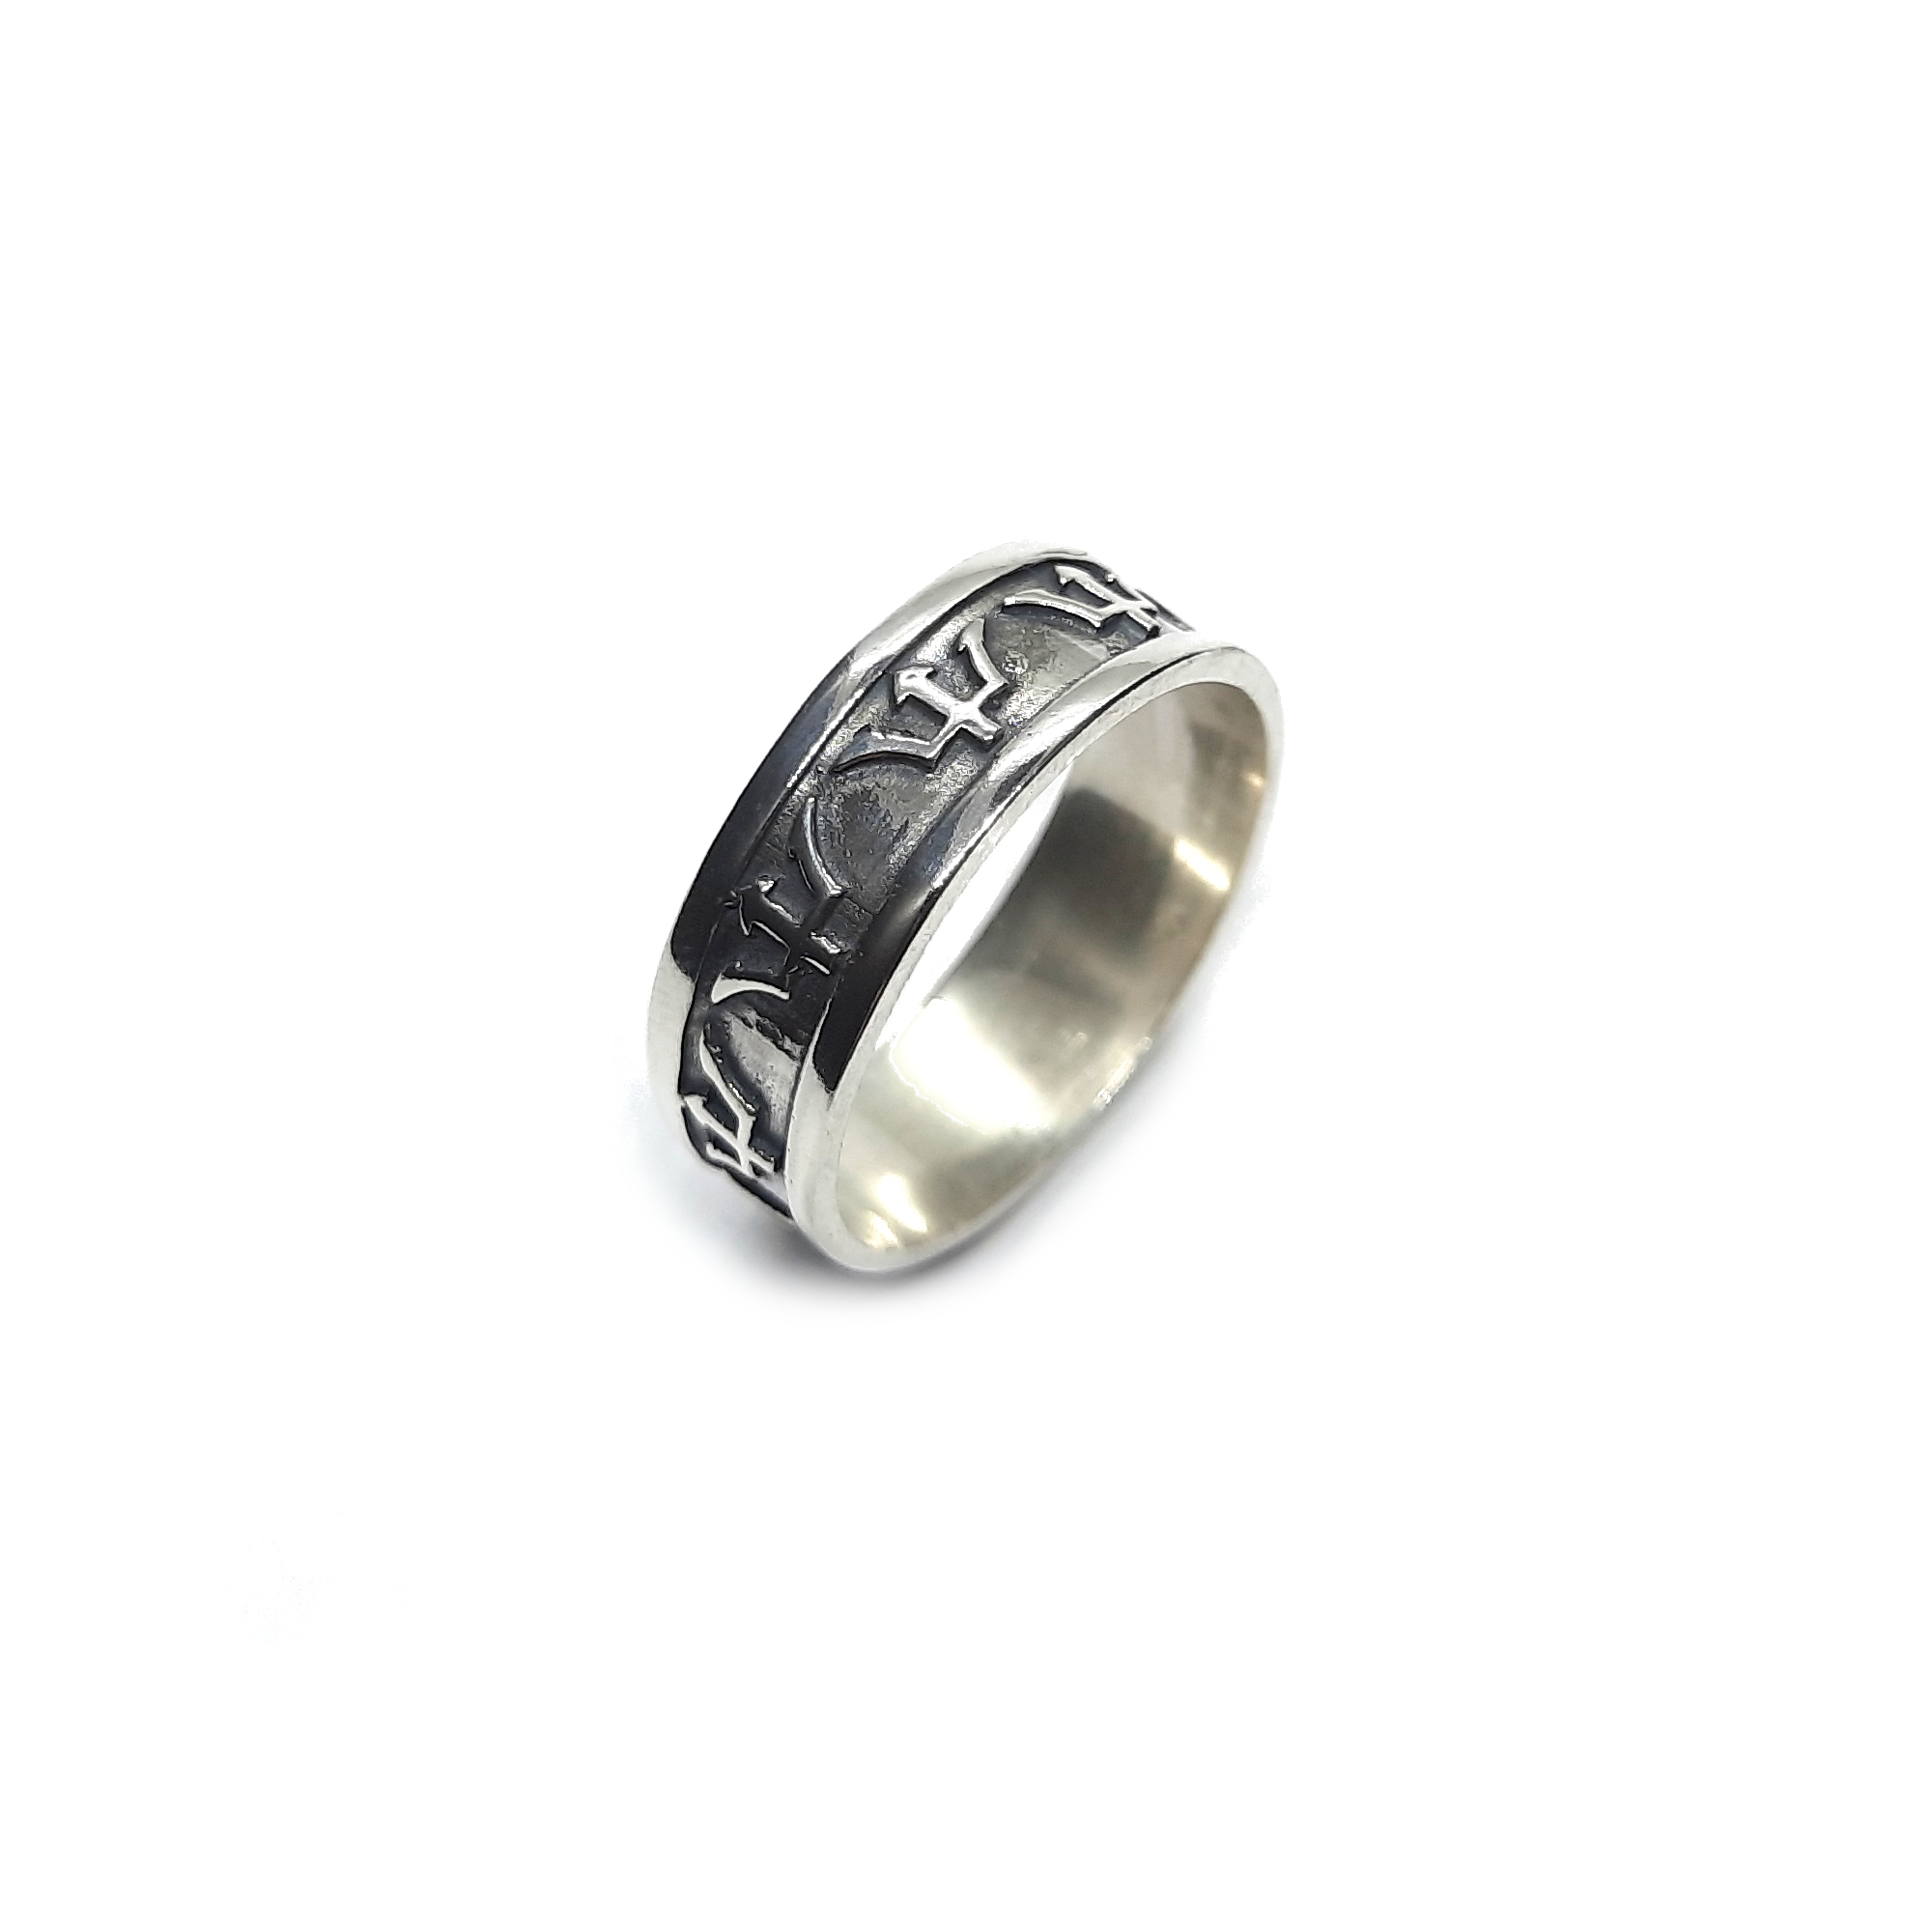 Silver ring - R002243